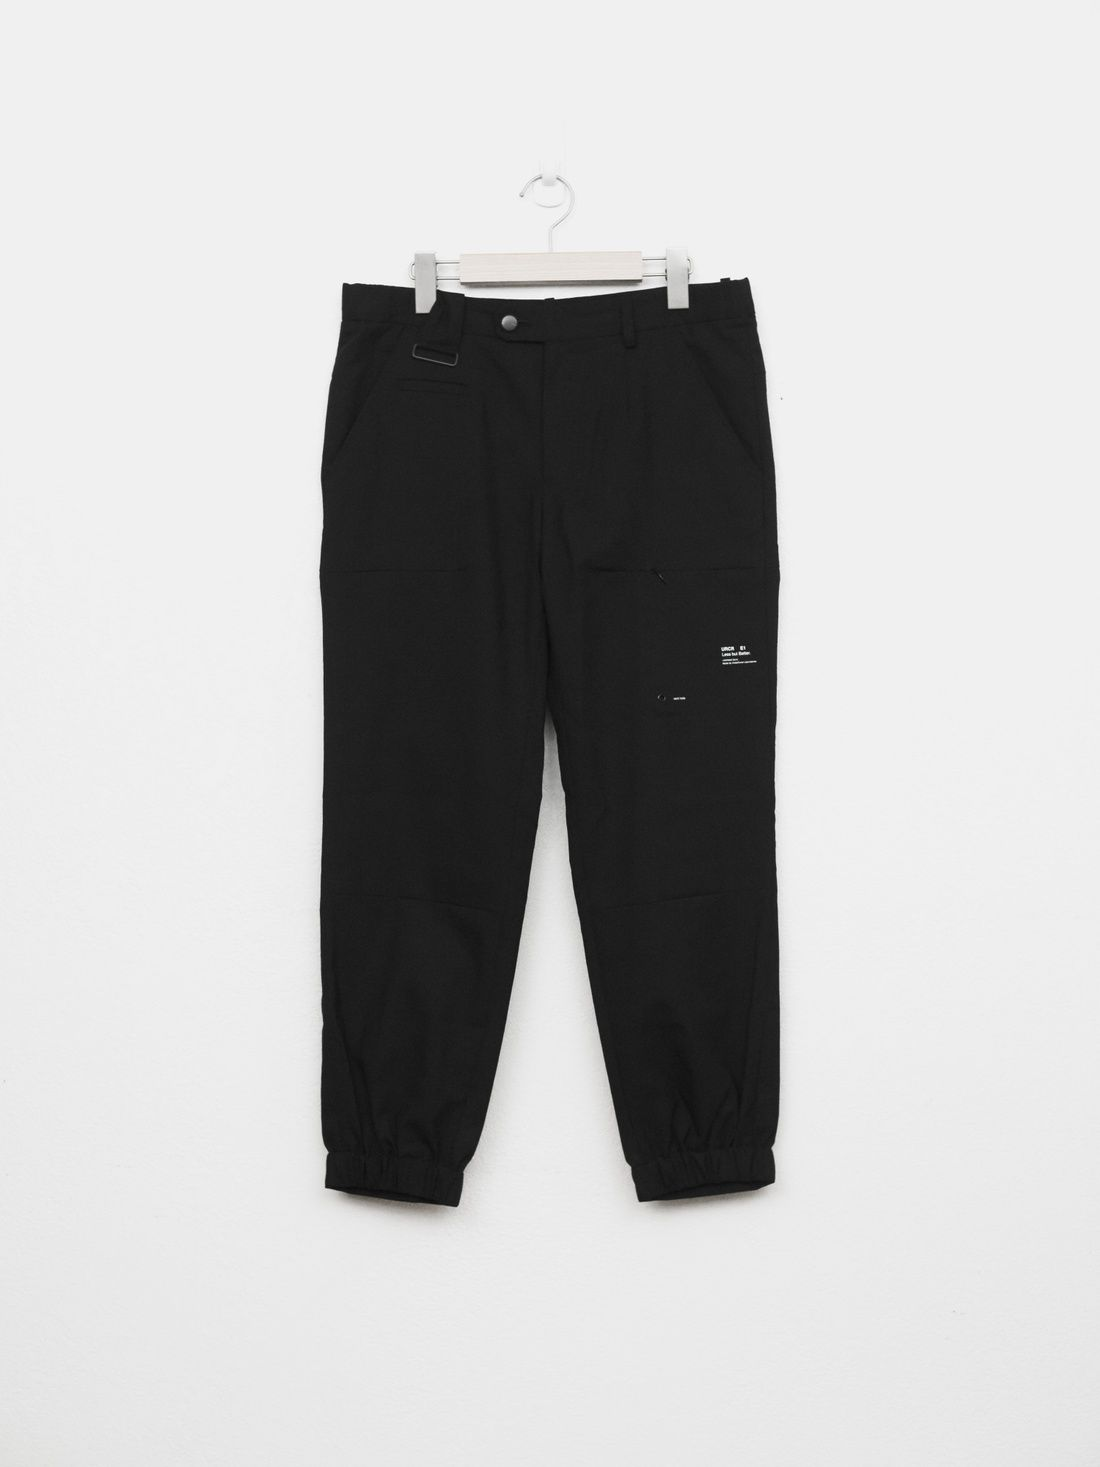 9563df13ac6ff Undercover 10 Ss Less But Better Cargo Pants Size 30 $200 - Grailed ...